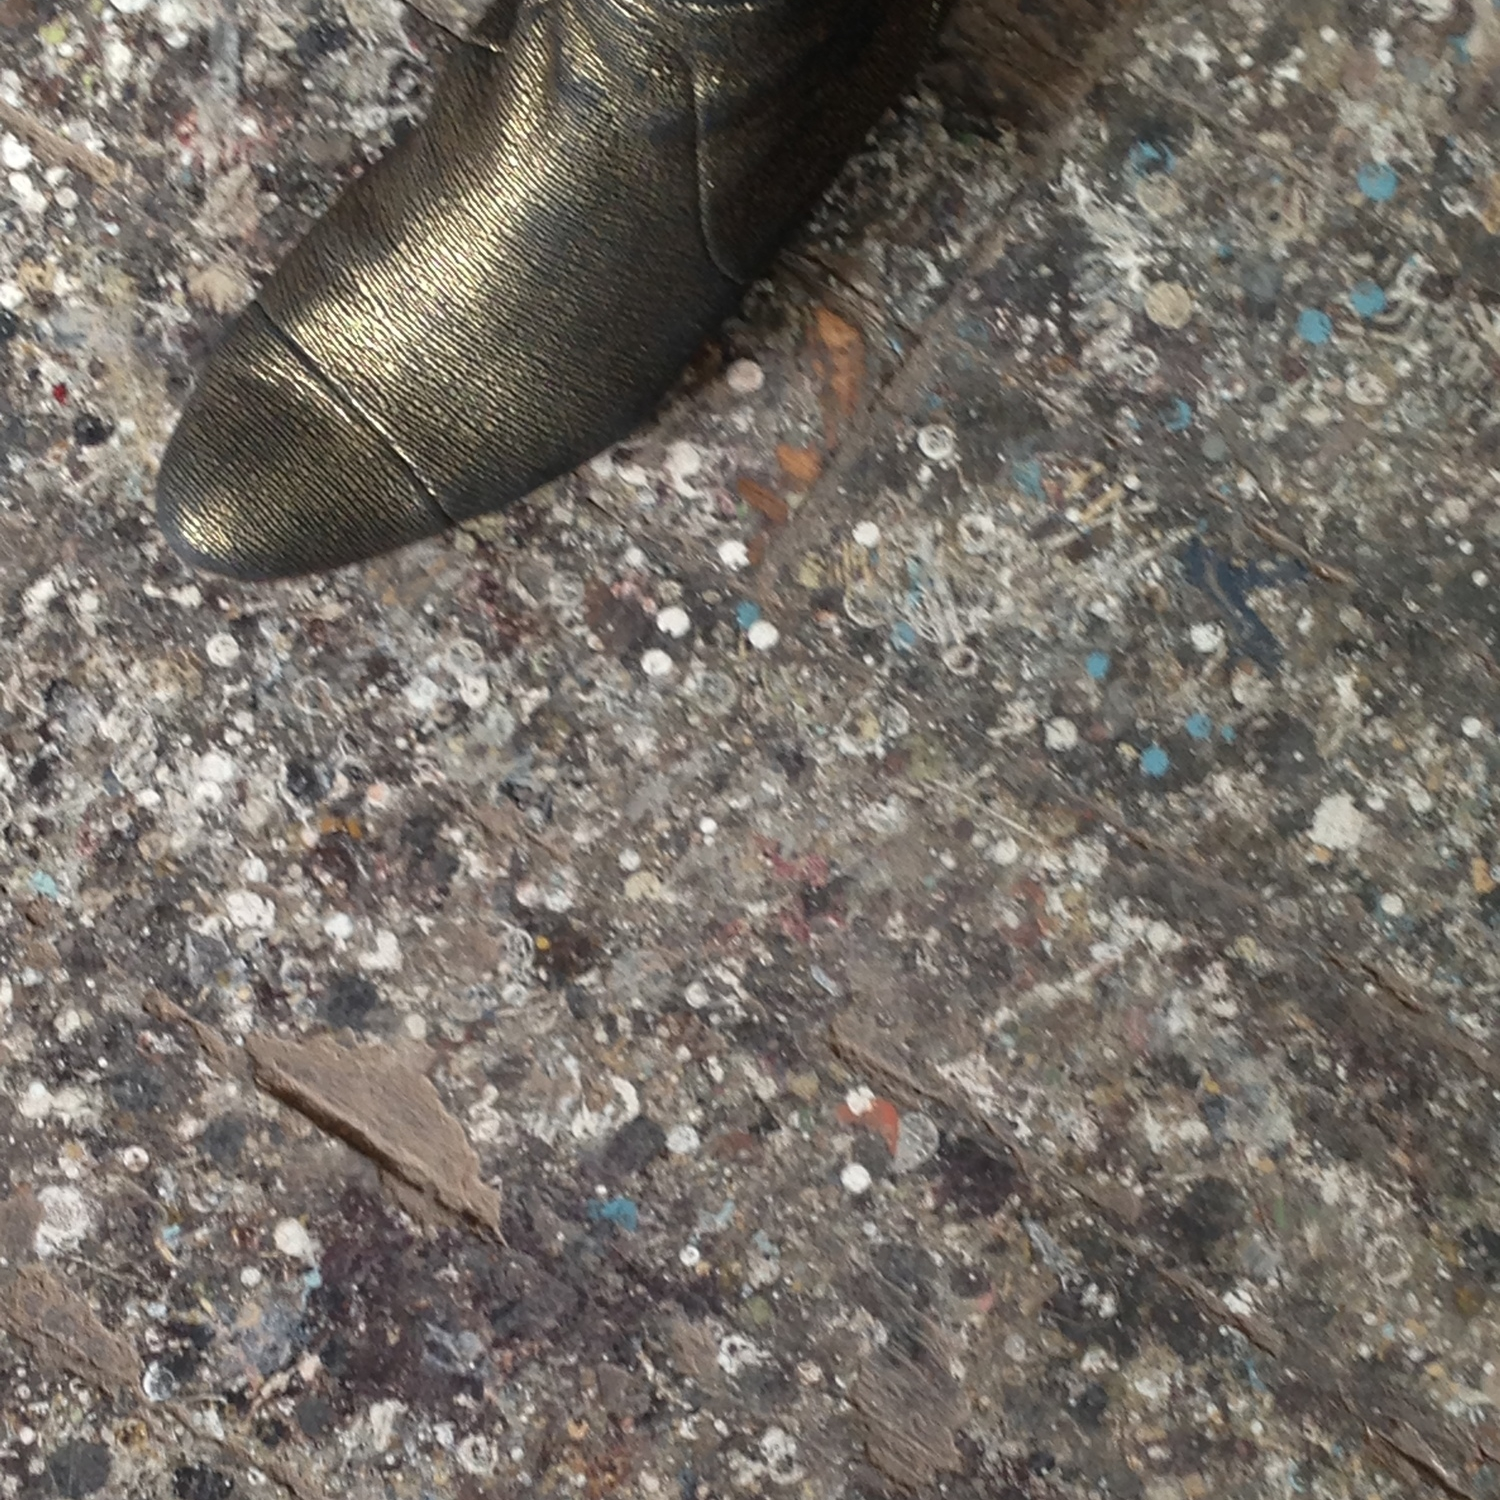 Steph's bronze boot on 50 year old patina provides a spark of inspiration